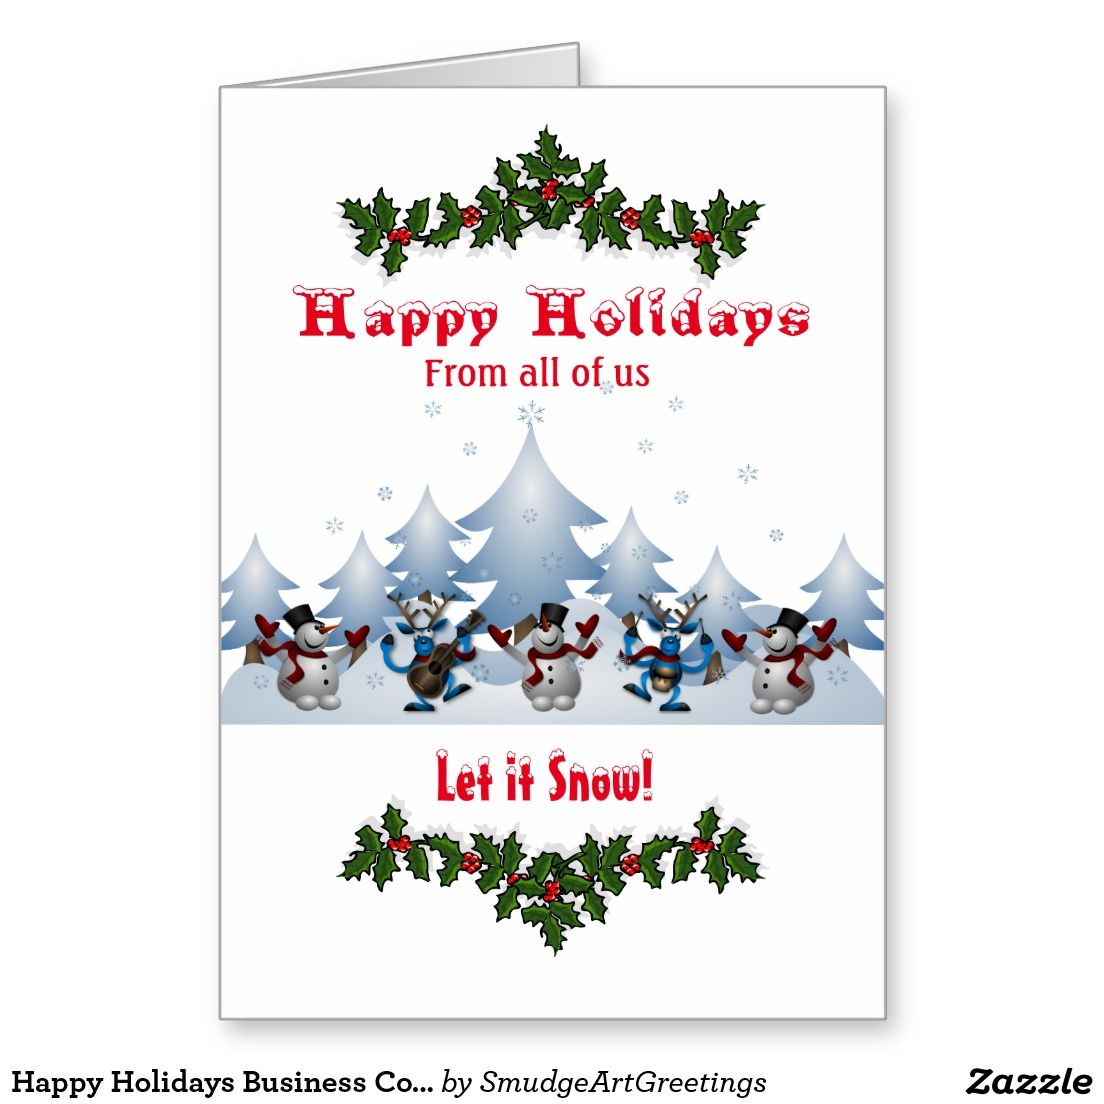 Happy holidays business corporate snowmen reindeer card business happy holidays business corporate snowmen reindeer card m4hsunfo